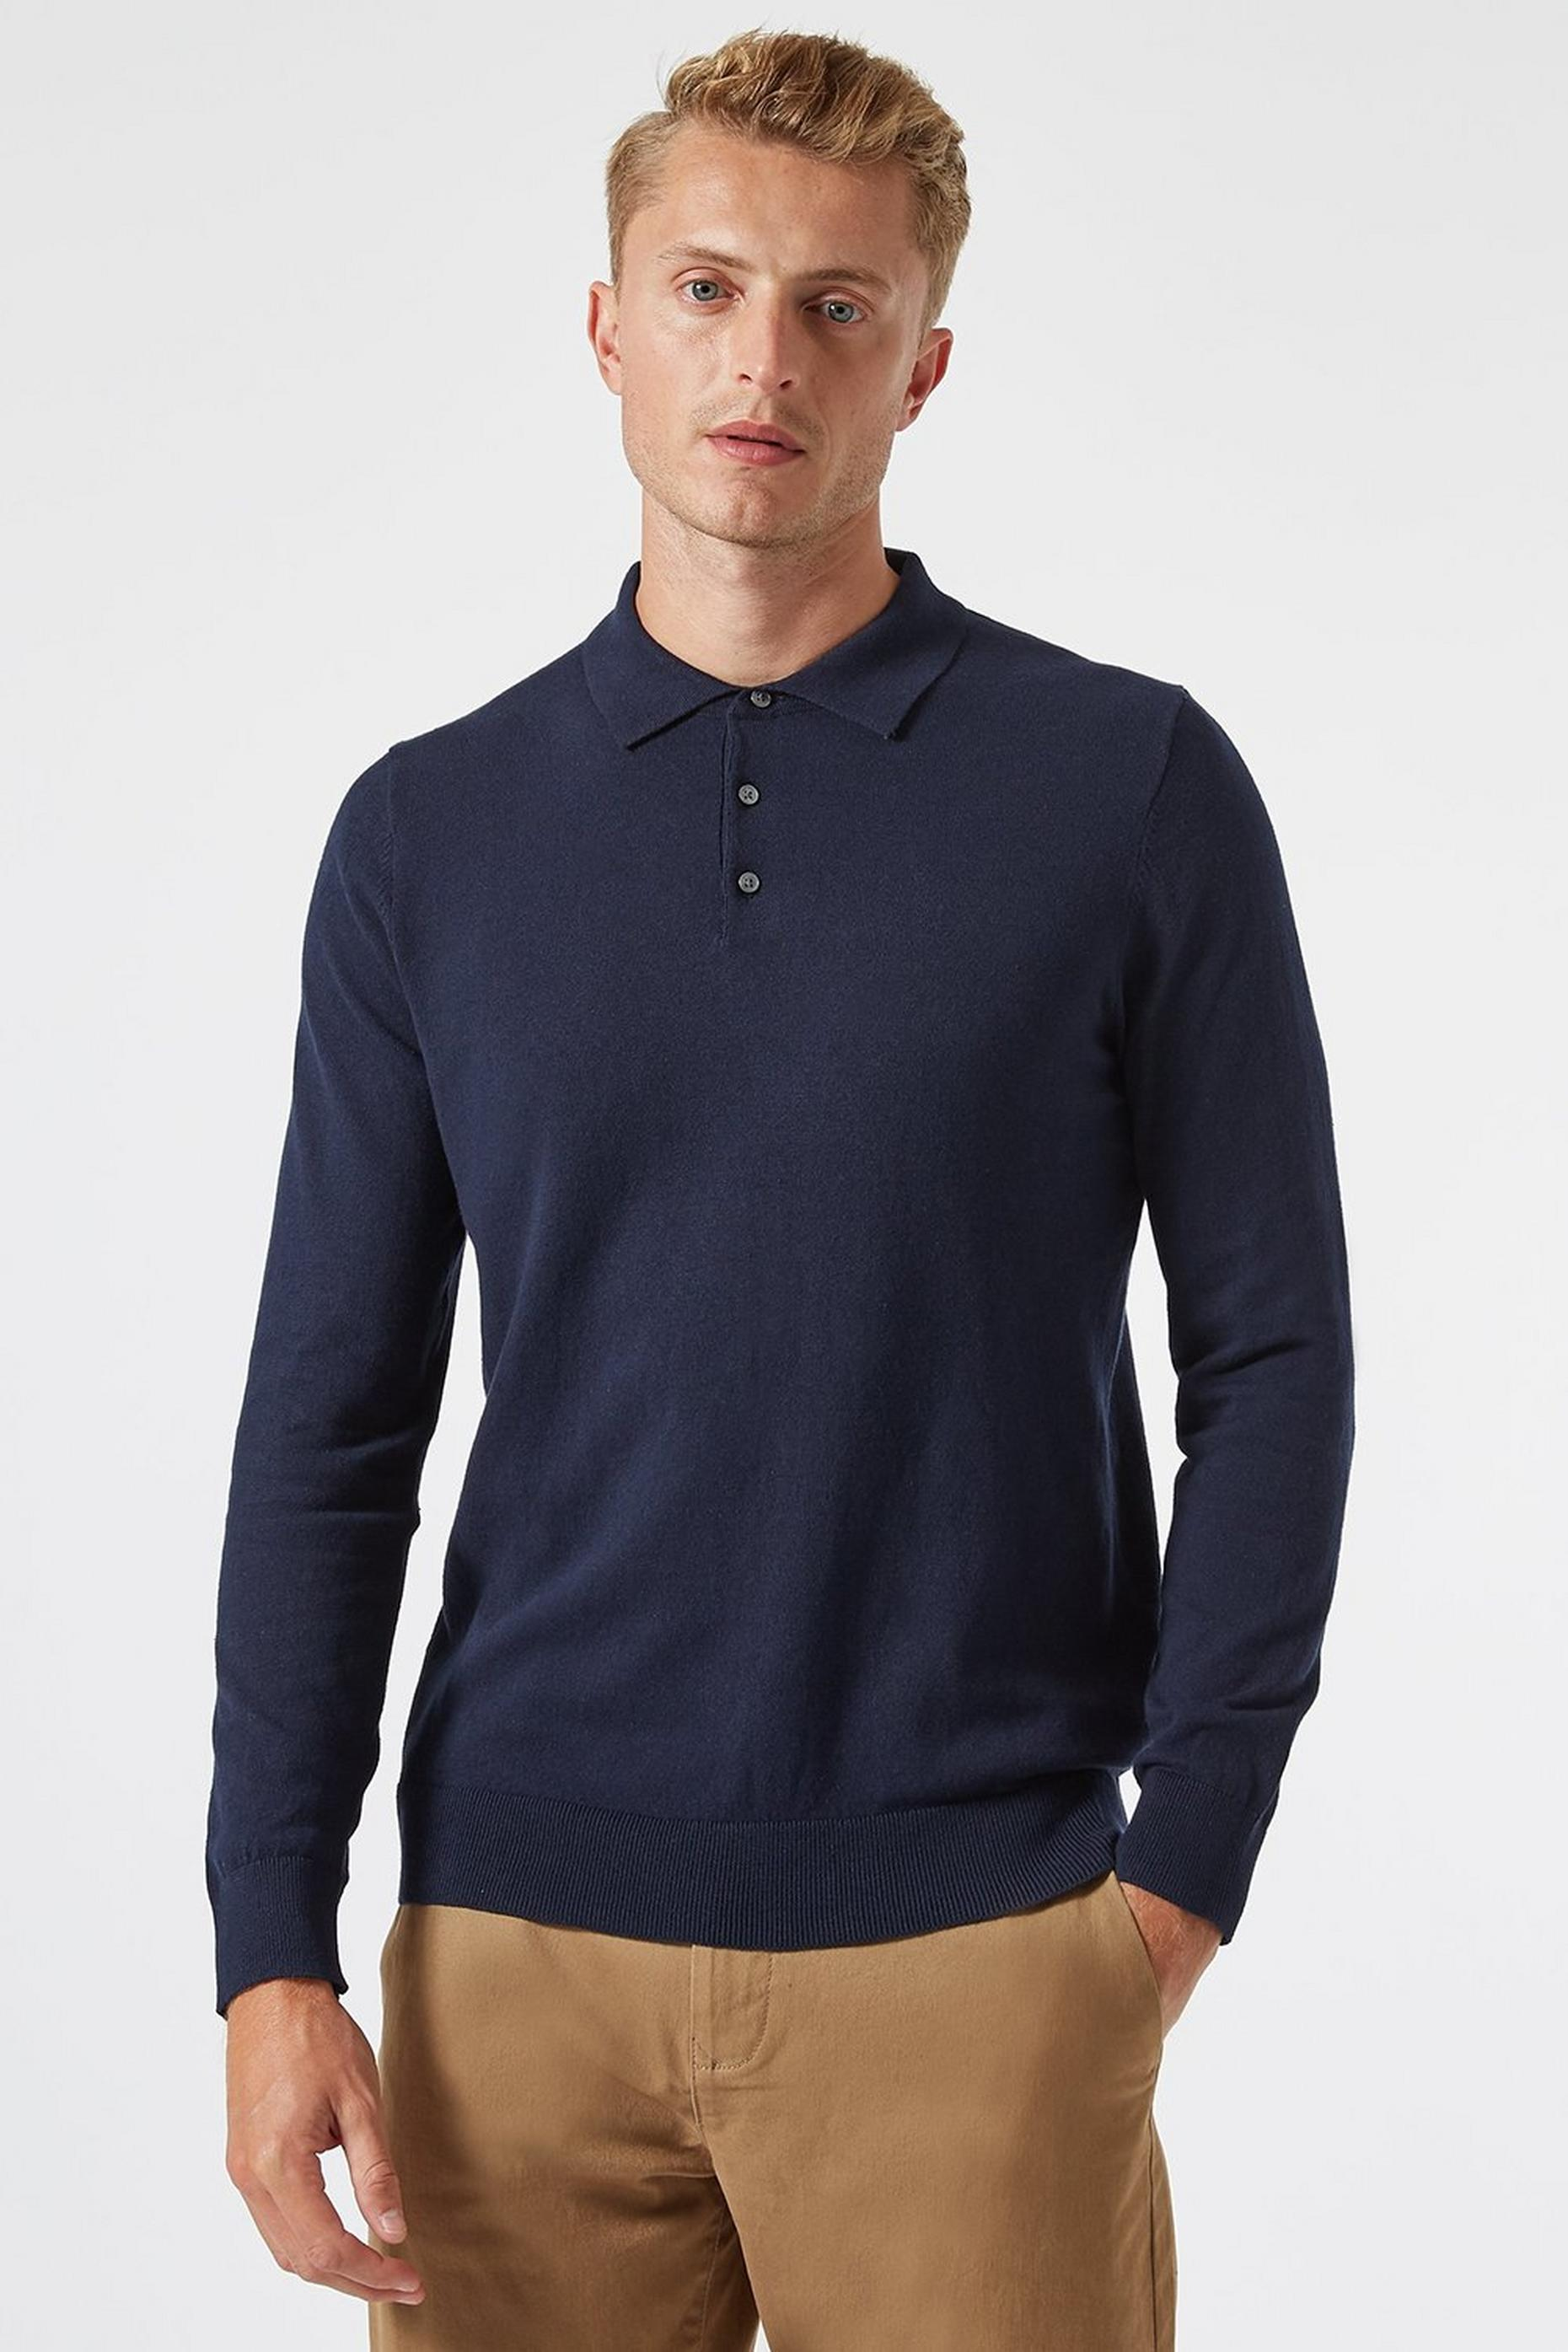 Navy Knitted Polo Neck Jumper with Organic Cotton